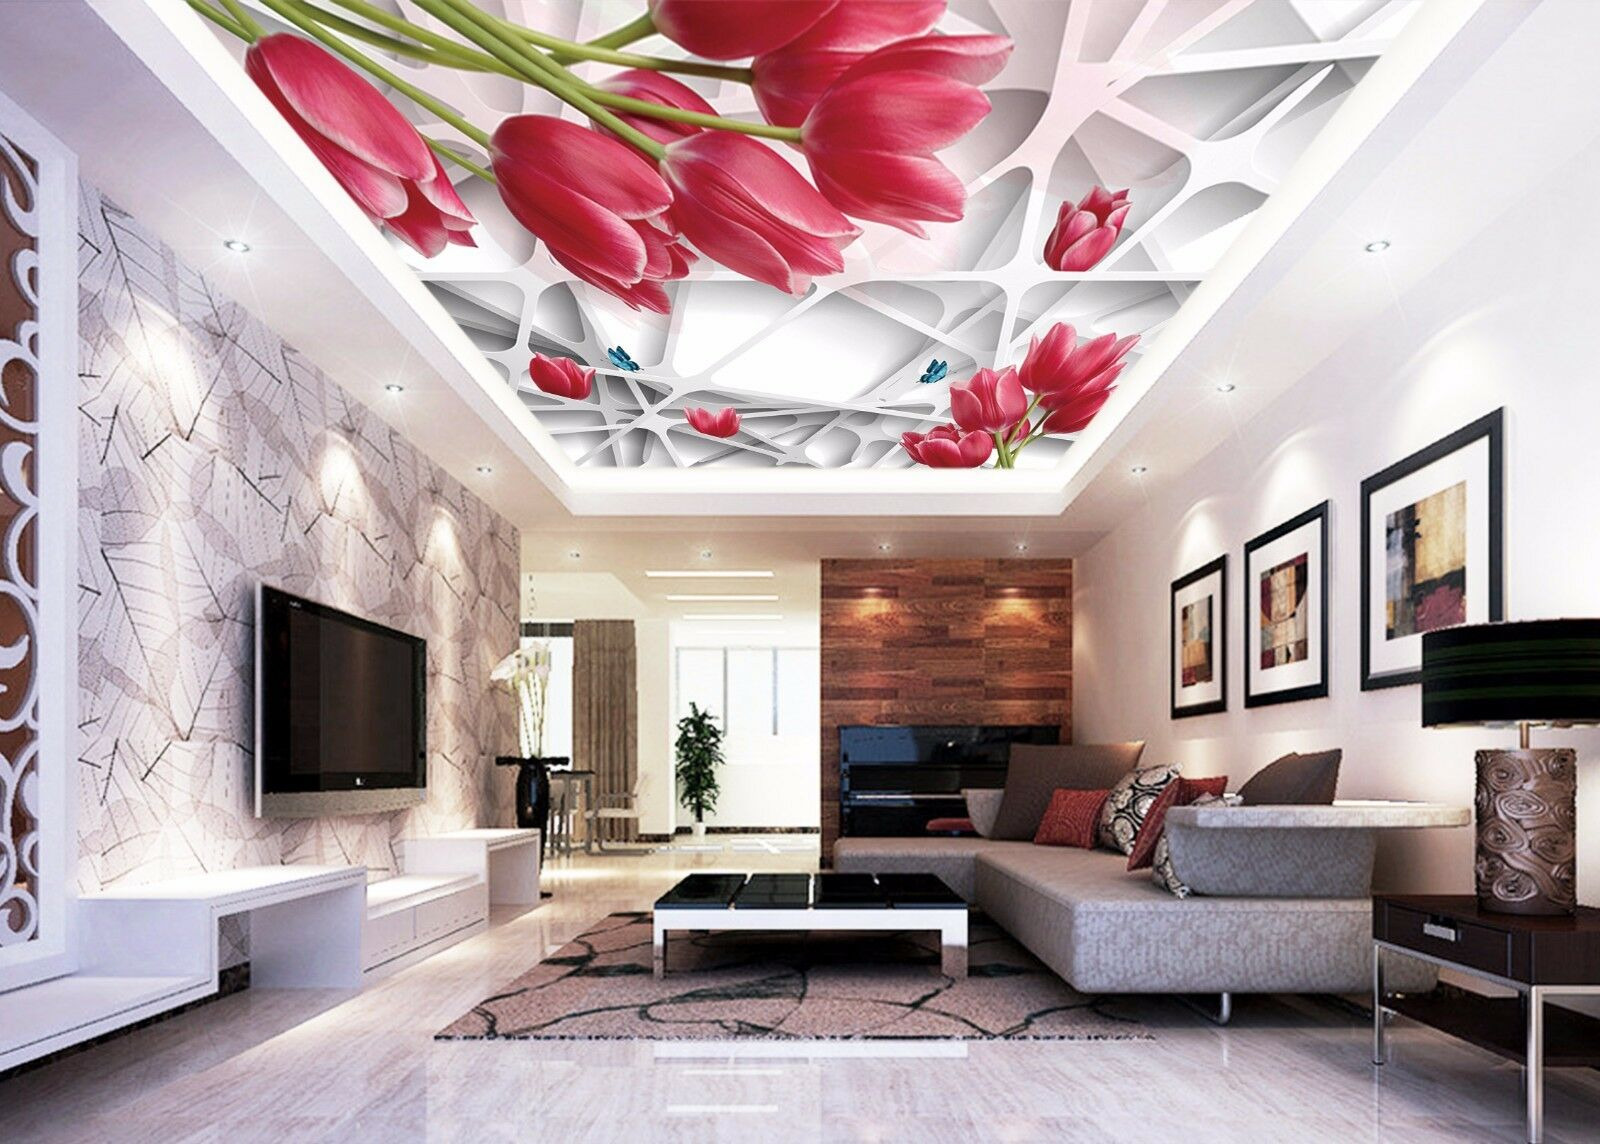 3D rot Tulips 74 Ceiling WallPaper Murals Wall Print Decal Deco AJ WALLPAPER